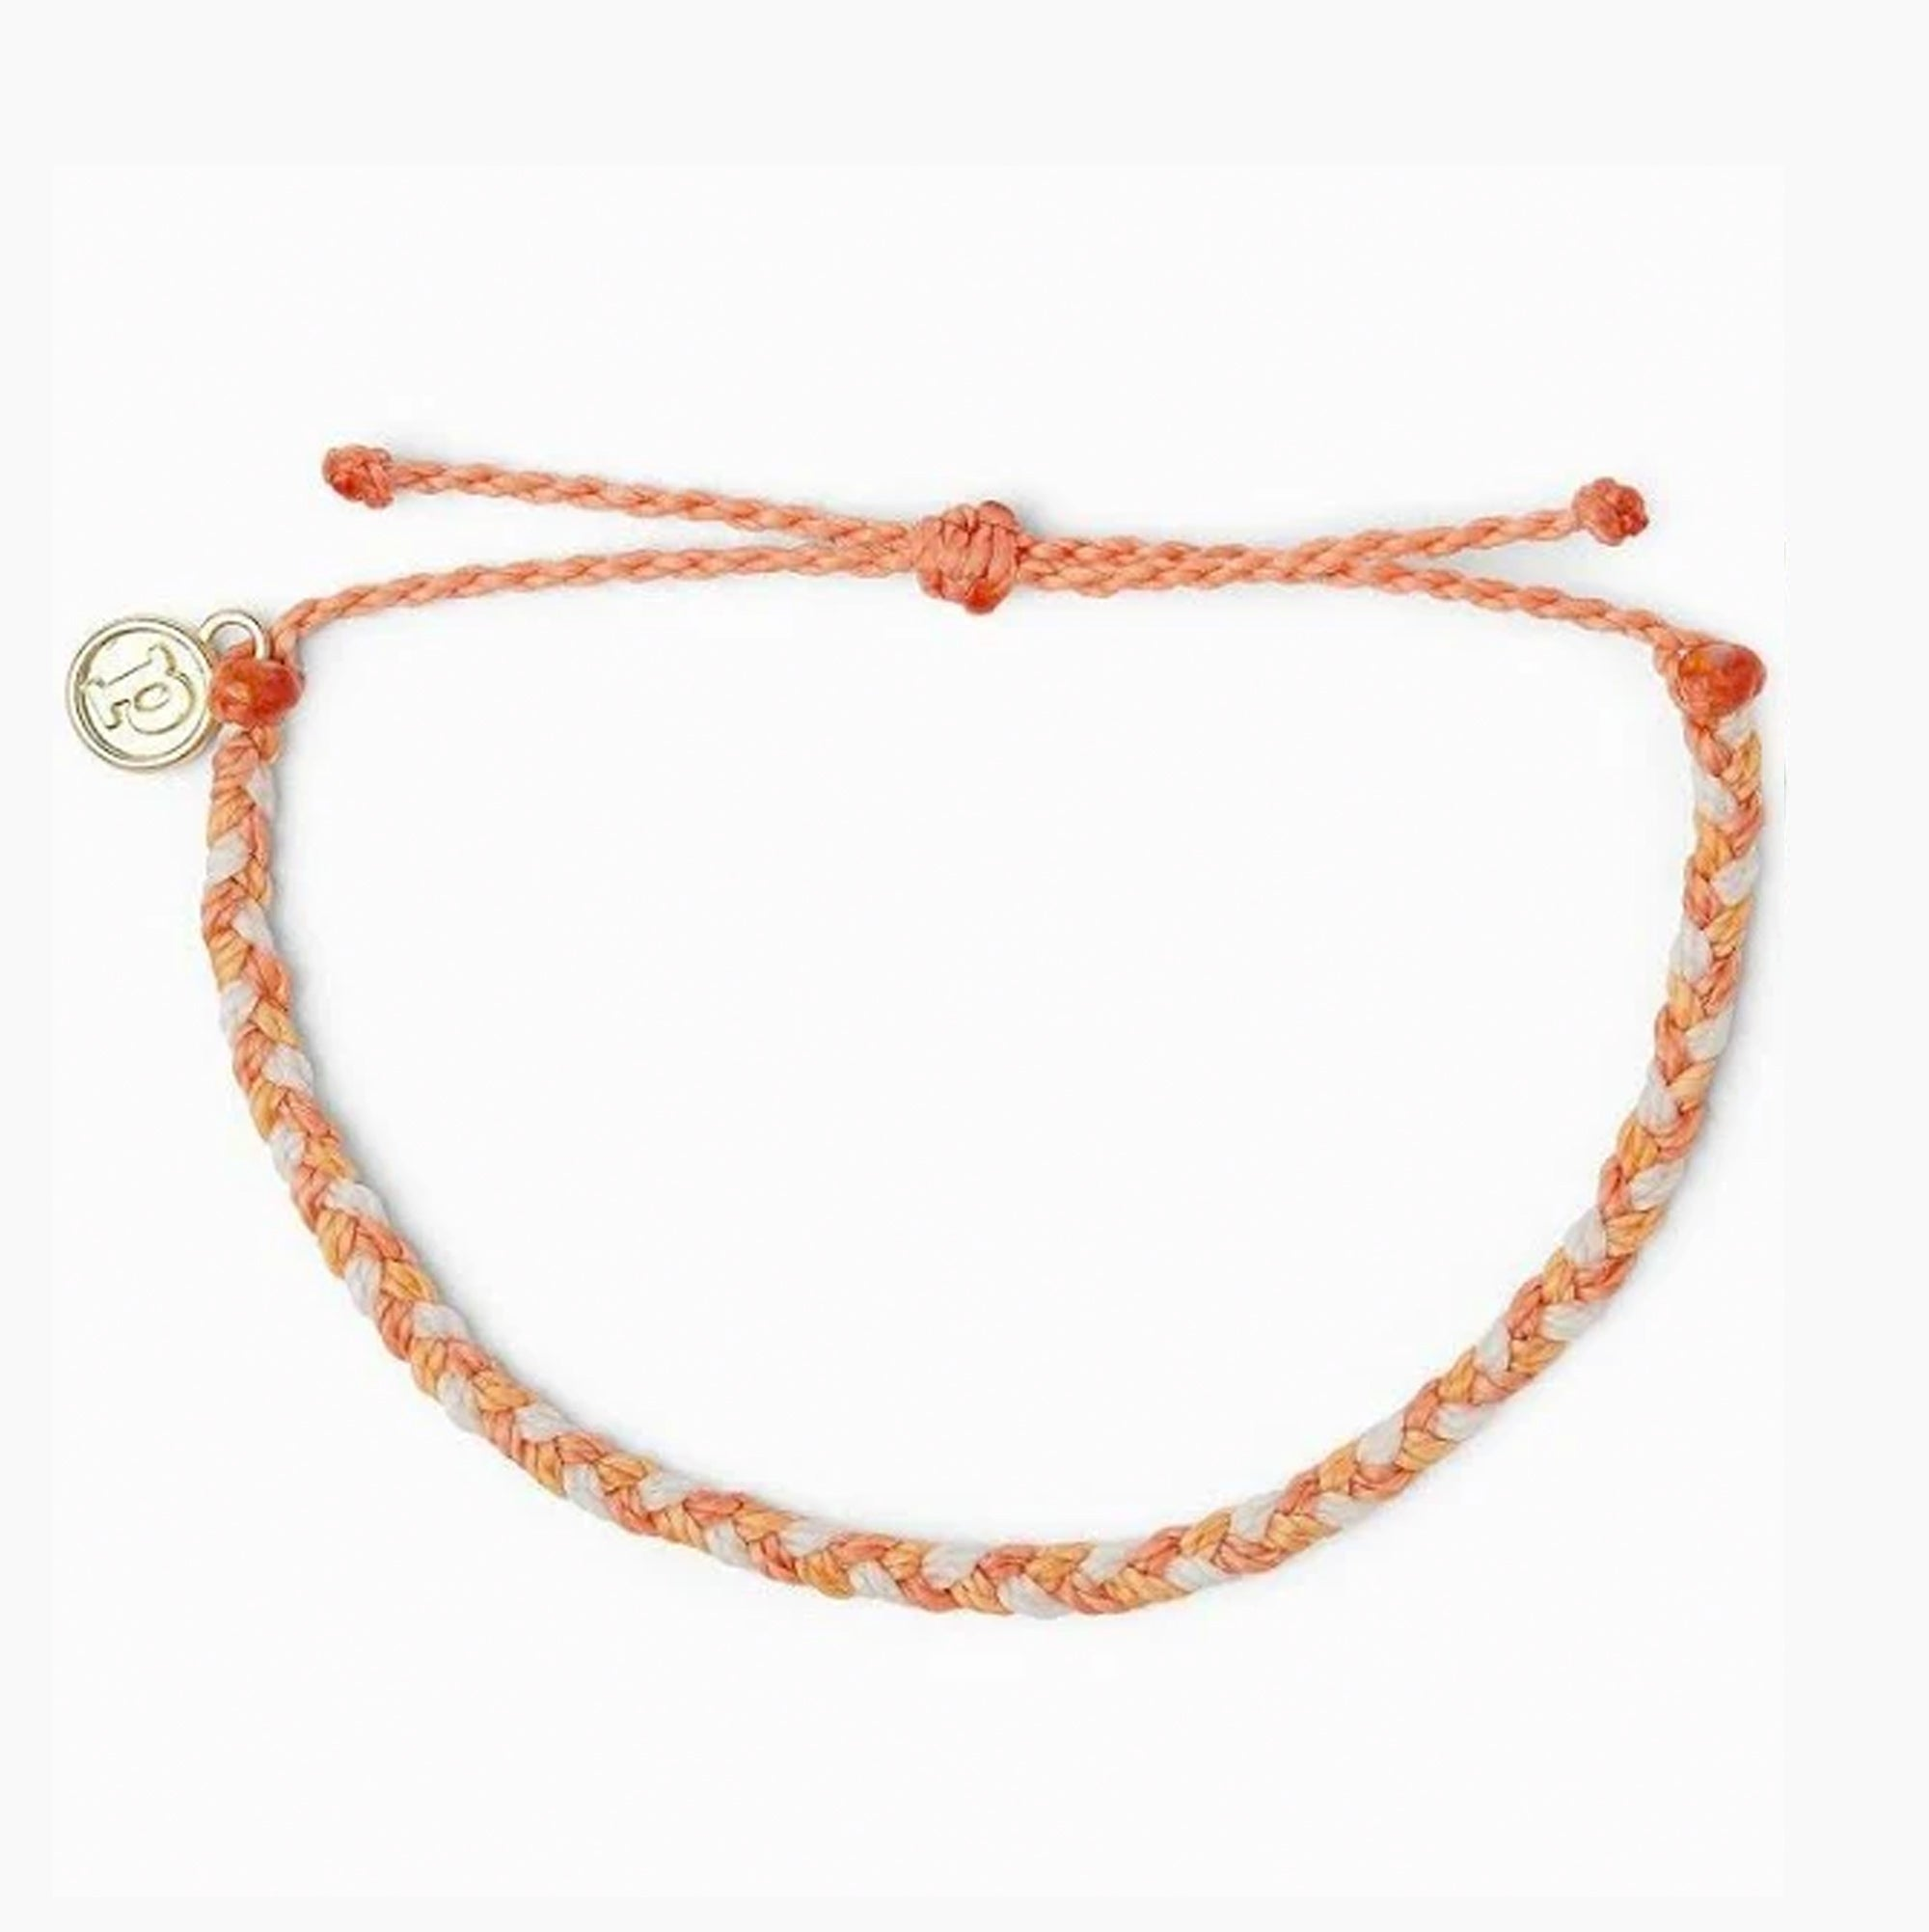 Pura Vida Mini Braided Warm Shoreline Bracelet